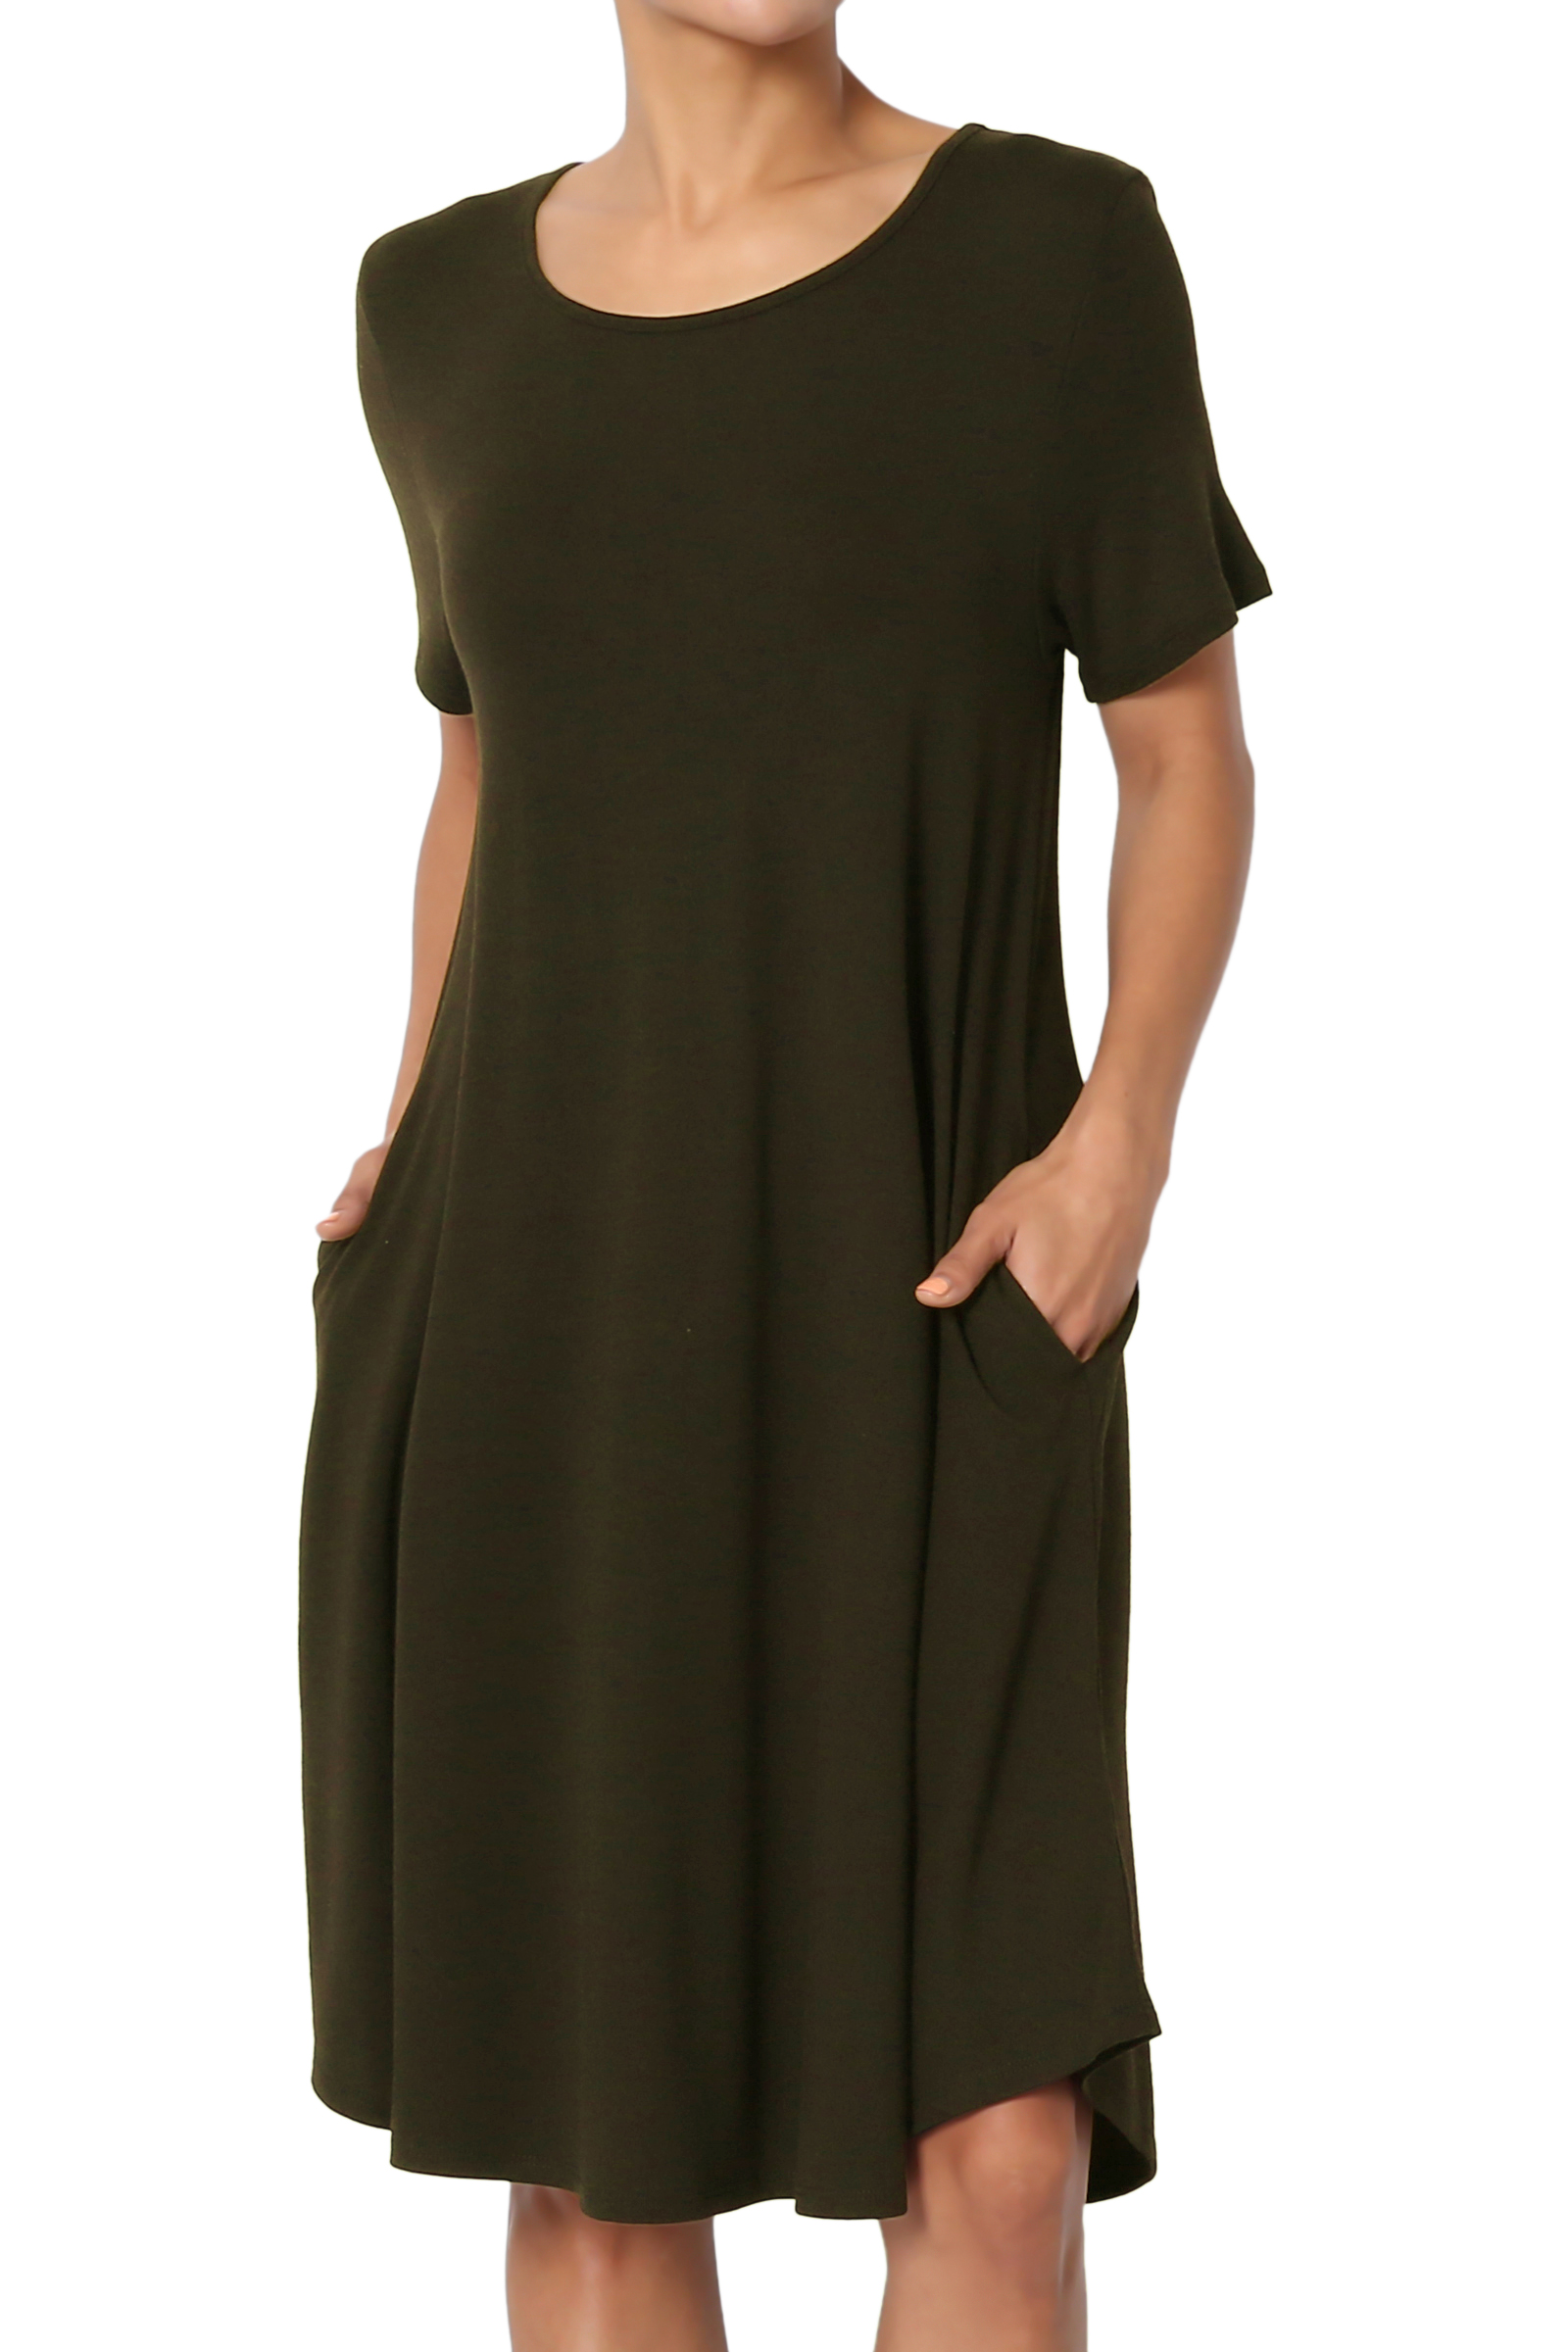 TheMogan Women's PLUS Short Sleeve Draped Jersey Knit Pocket A-Line T-Shirt Dress